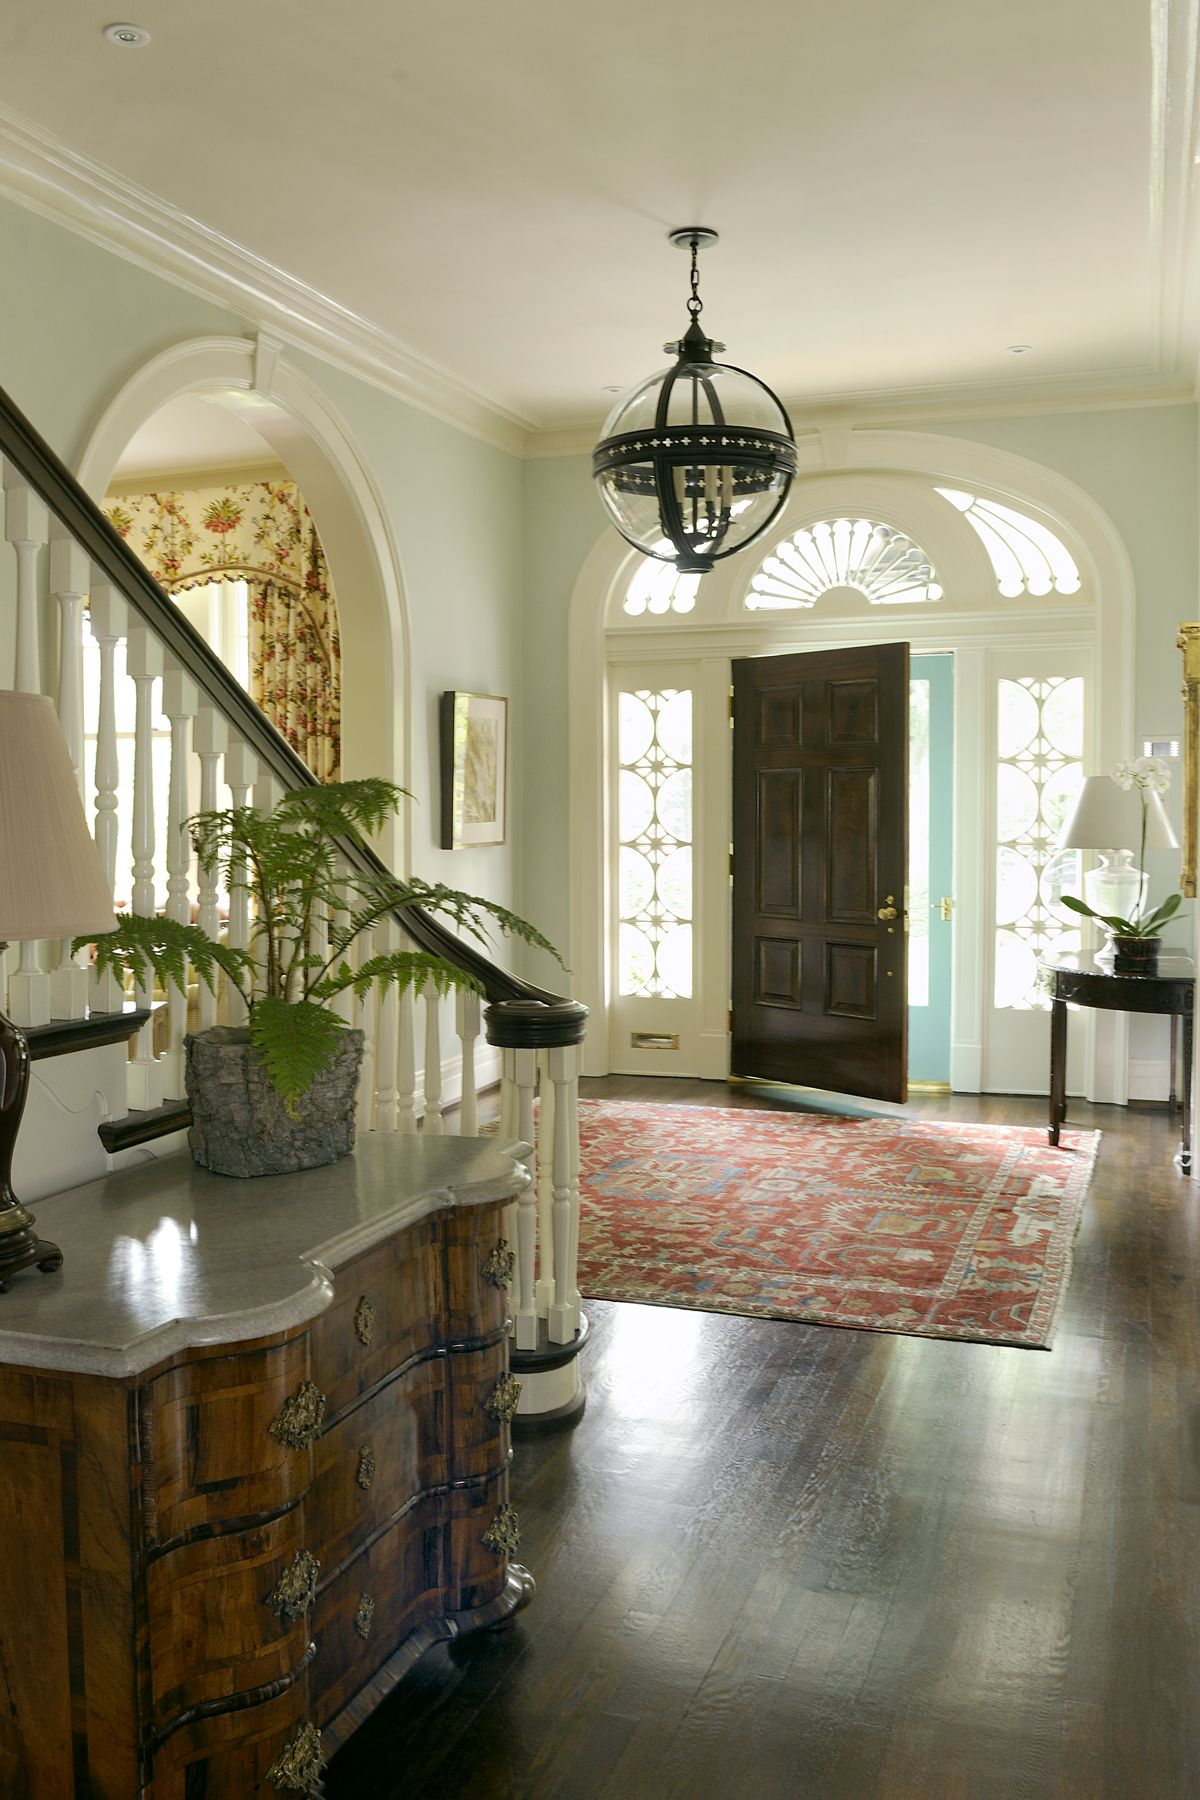 Large Foyer Fixture : Love this foyer quite a grand entrance great rug and